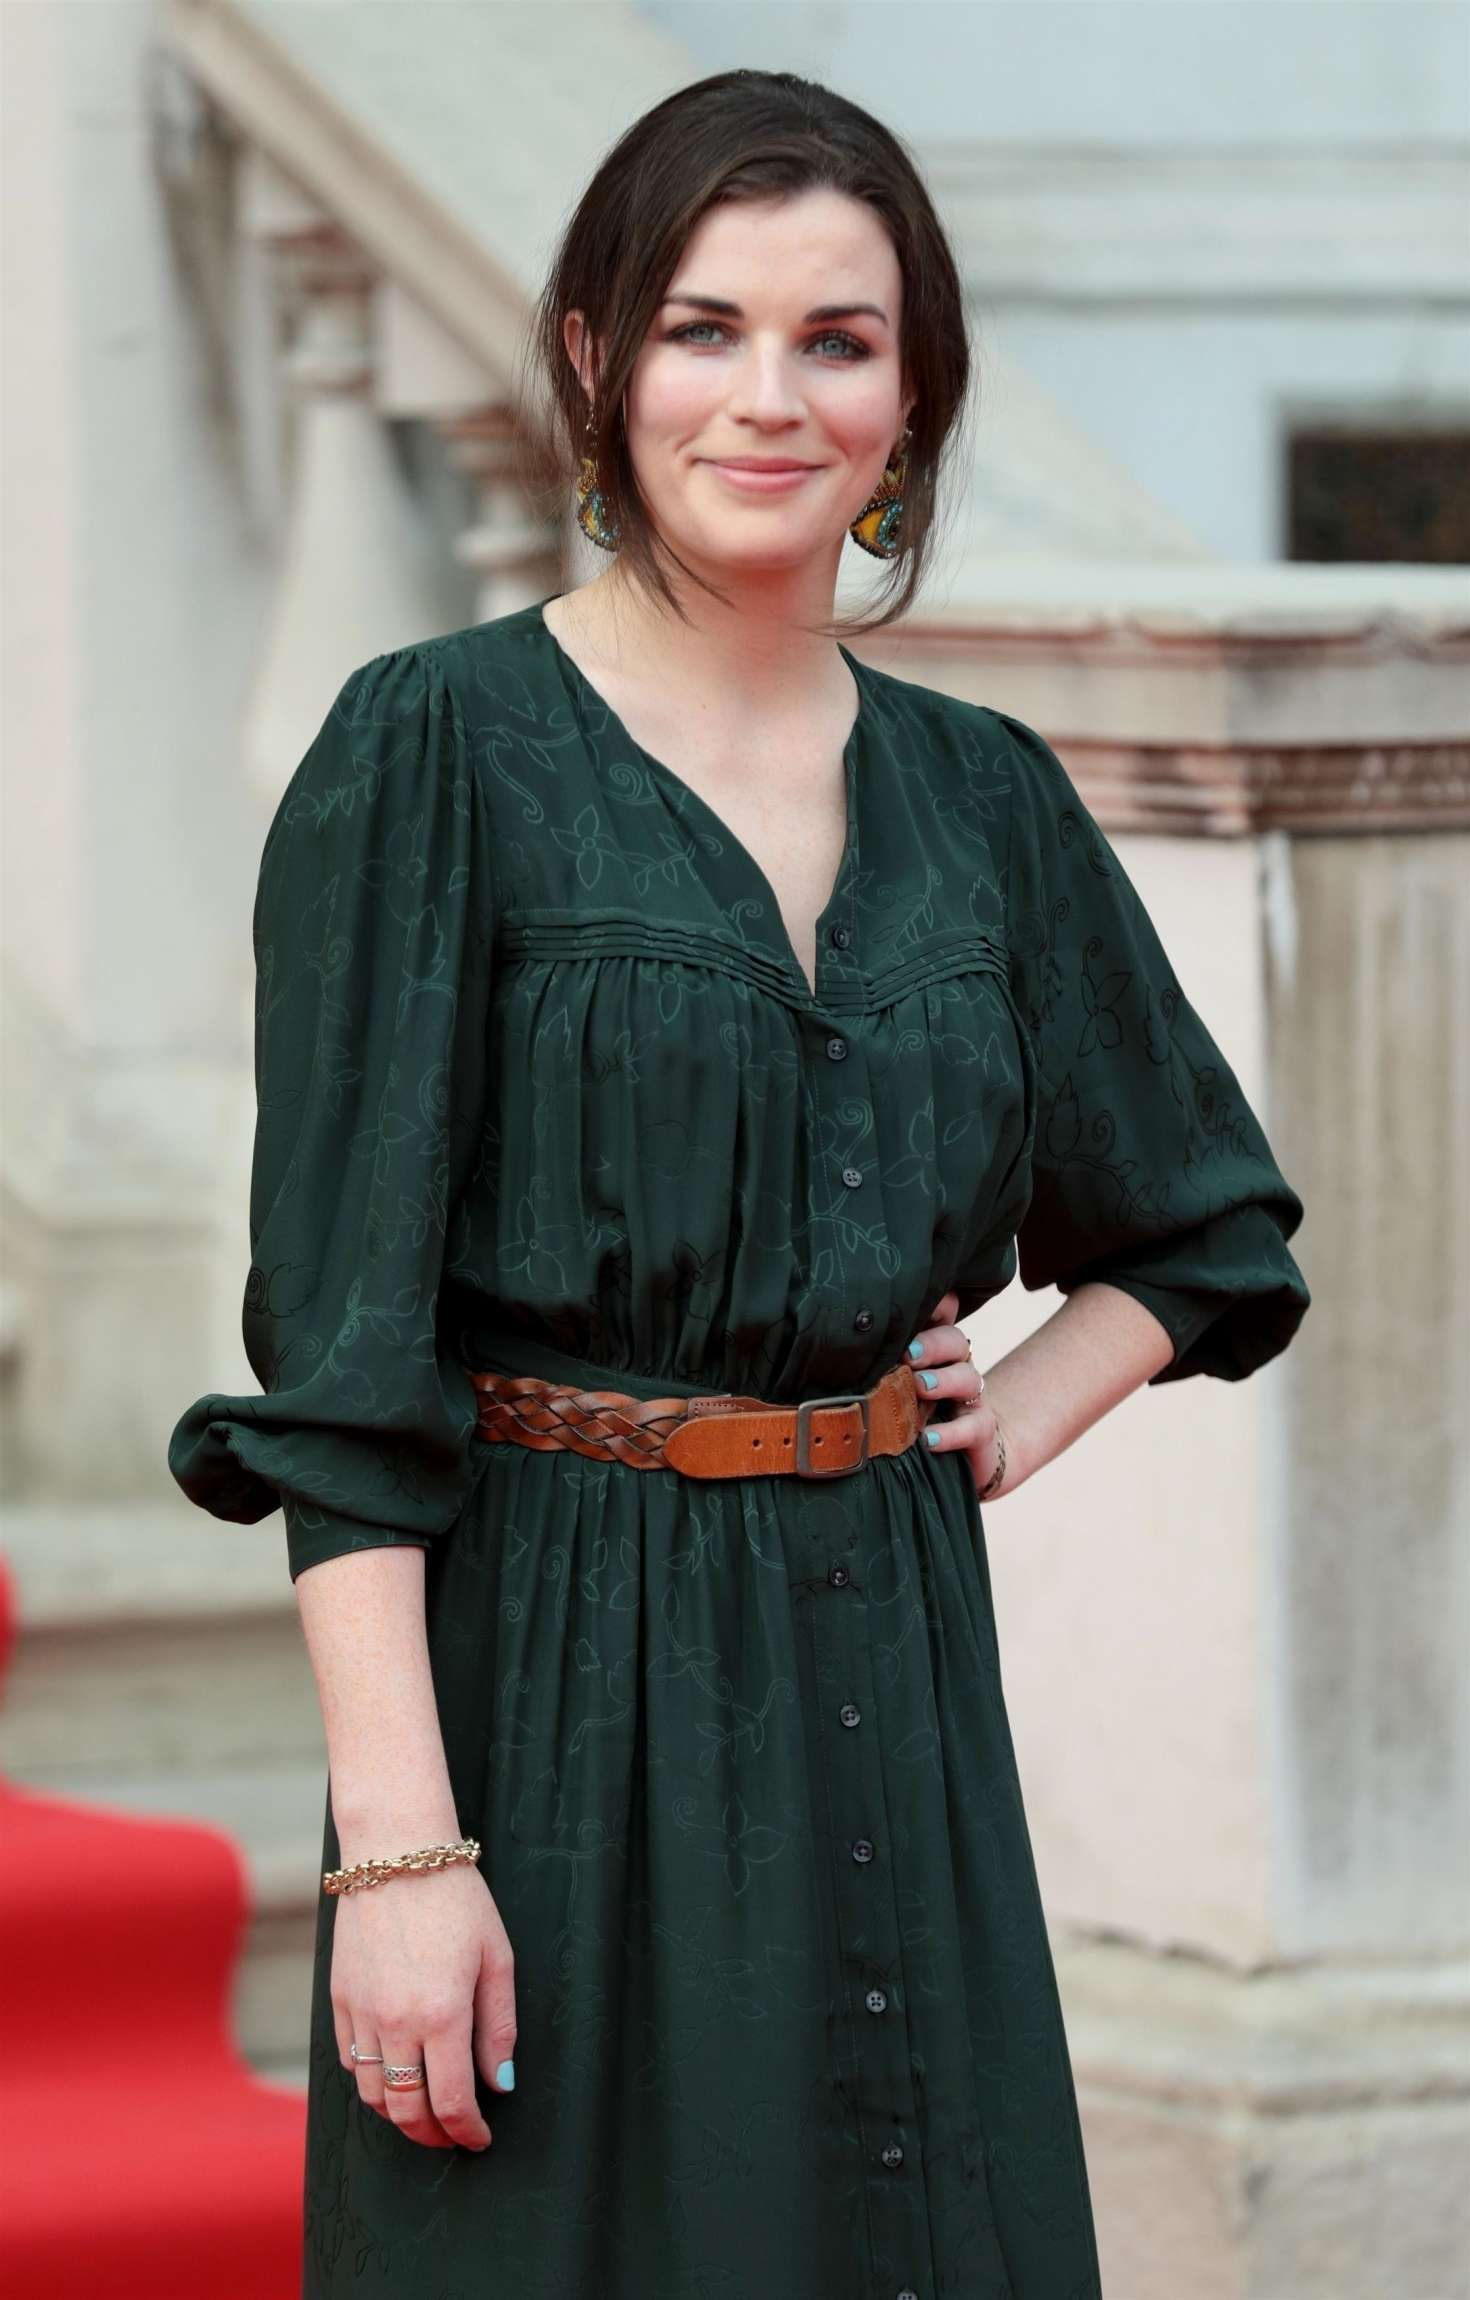 Aisling Bea - 'The Wife' Film4 Summer Screen Premiere in London